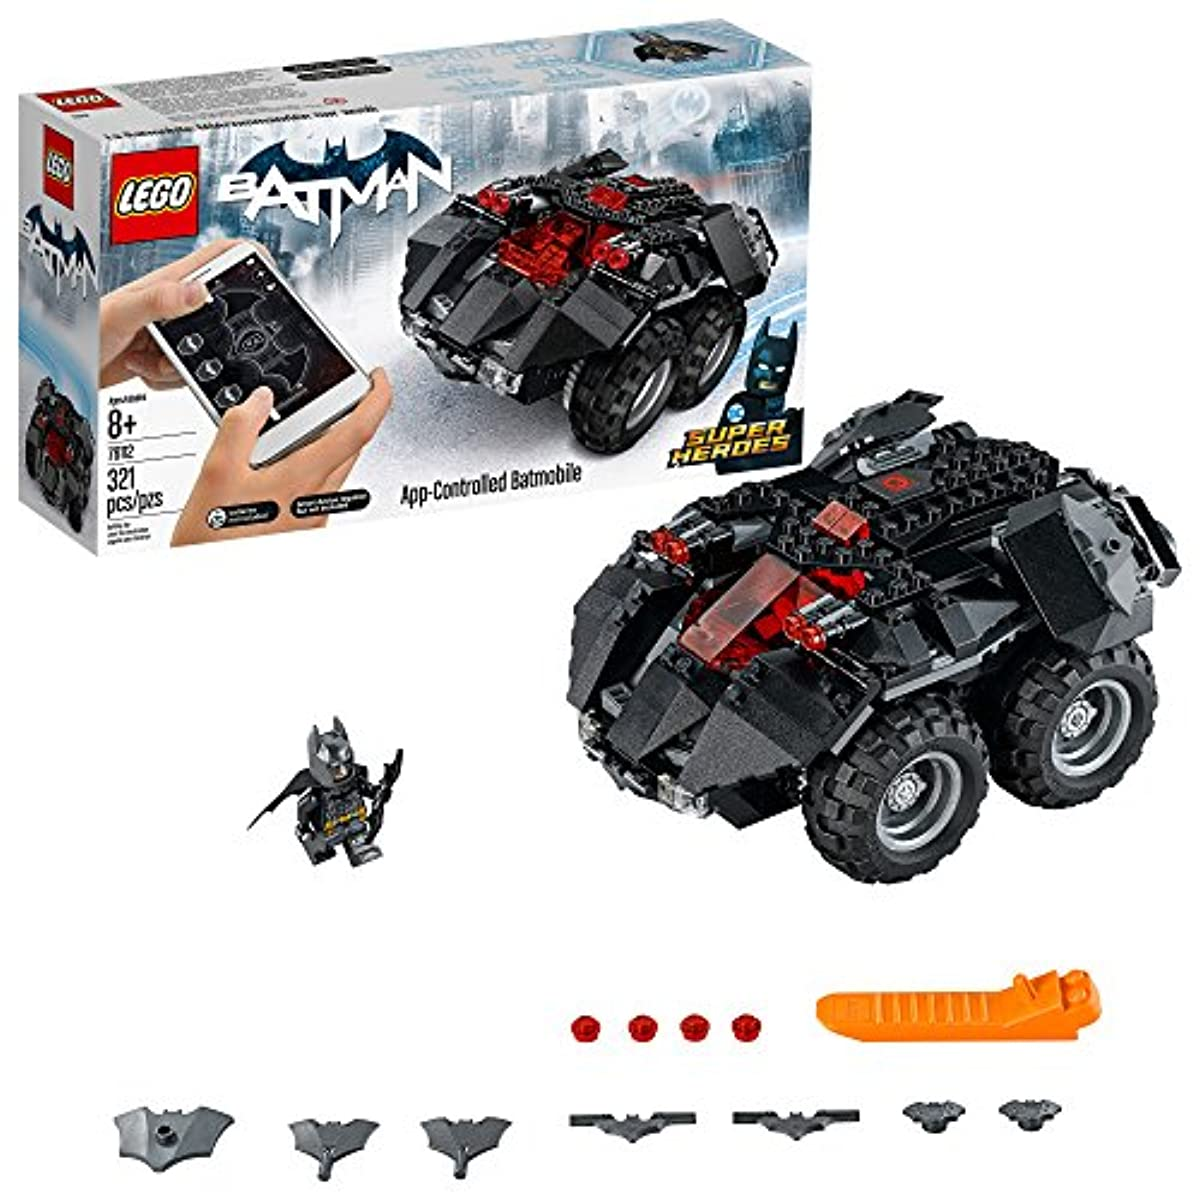 [레고 배트맨] LEGO DC Super Heroes App-controlled Batmobile 76112 Remote Control (rc) Batman Car, Best-Seller Building Kit and Toy for Boys (321 Piece)